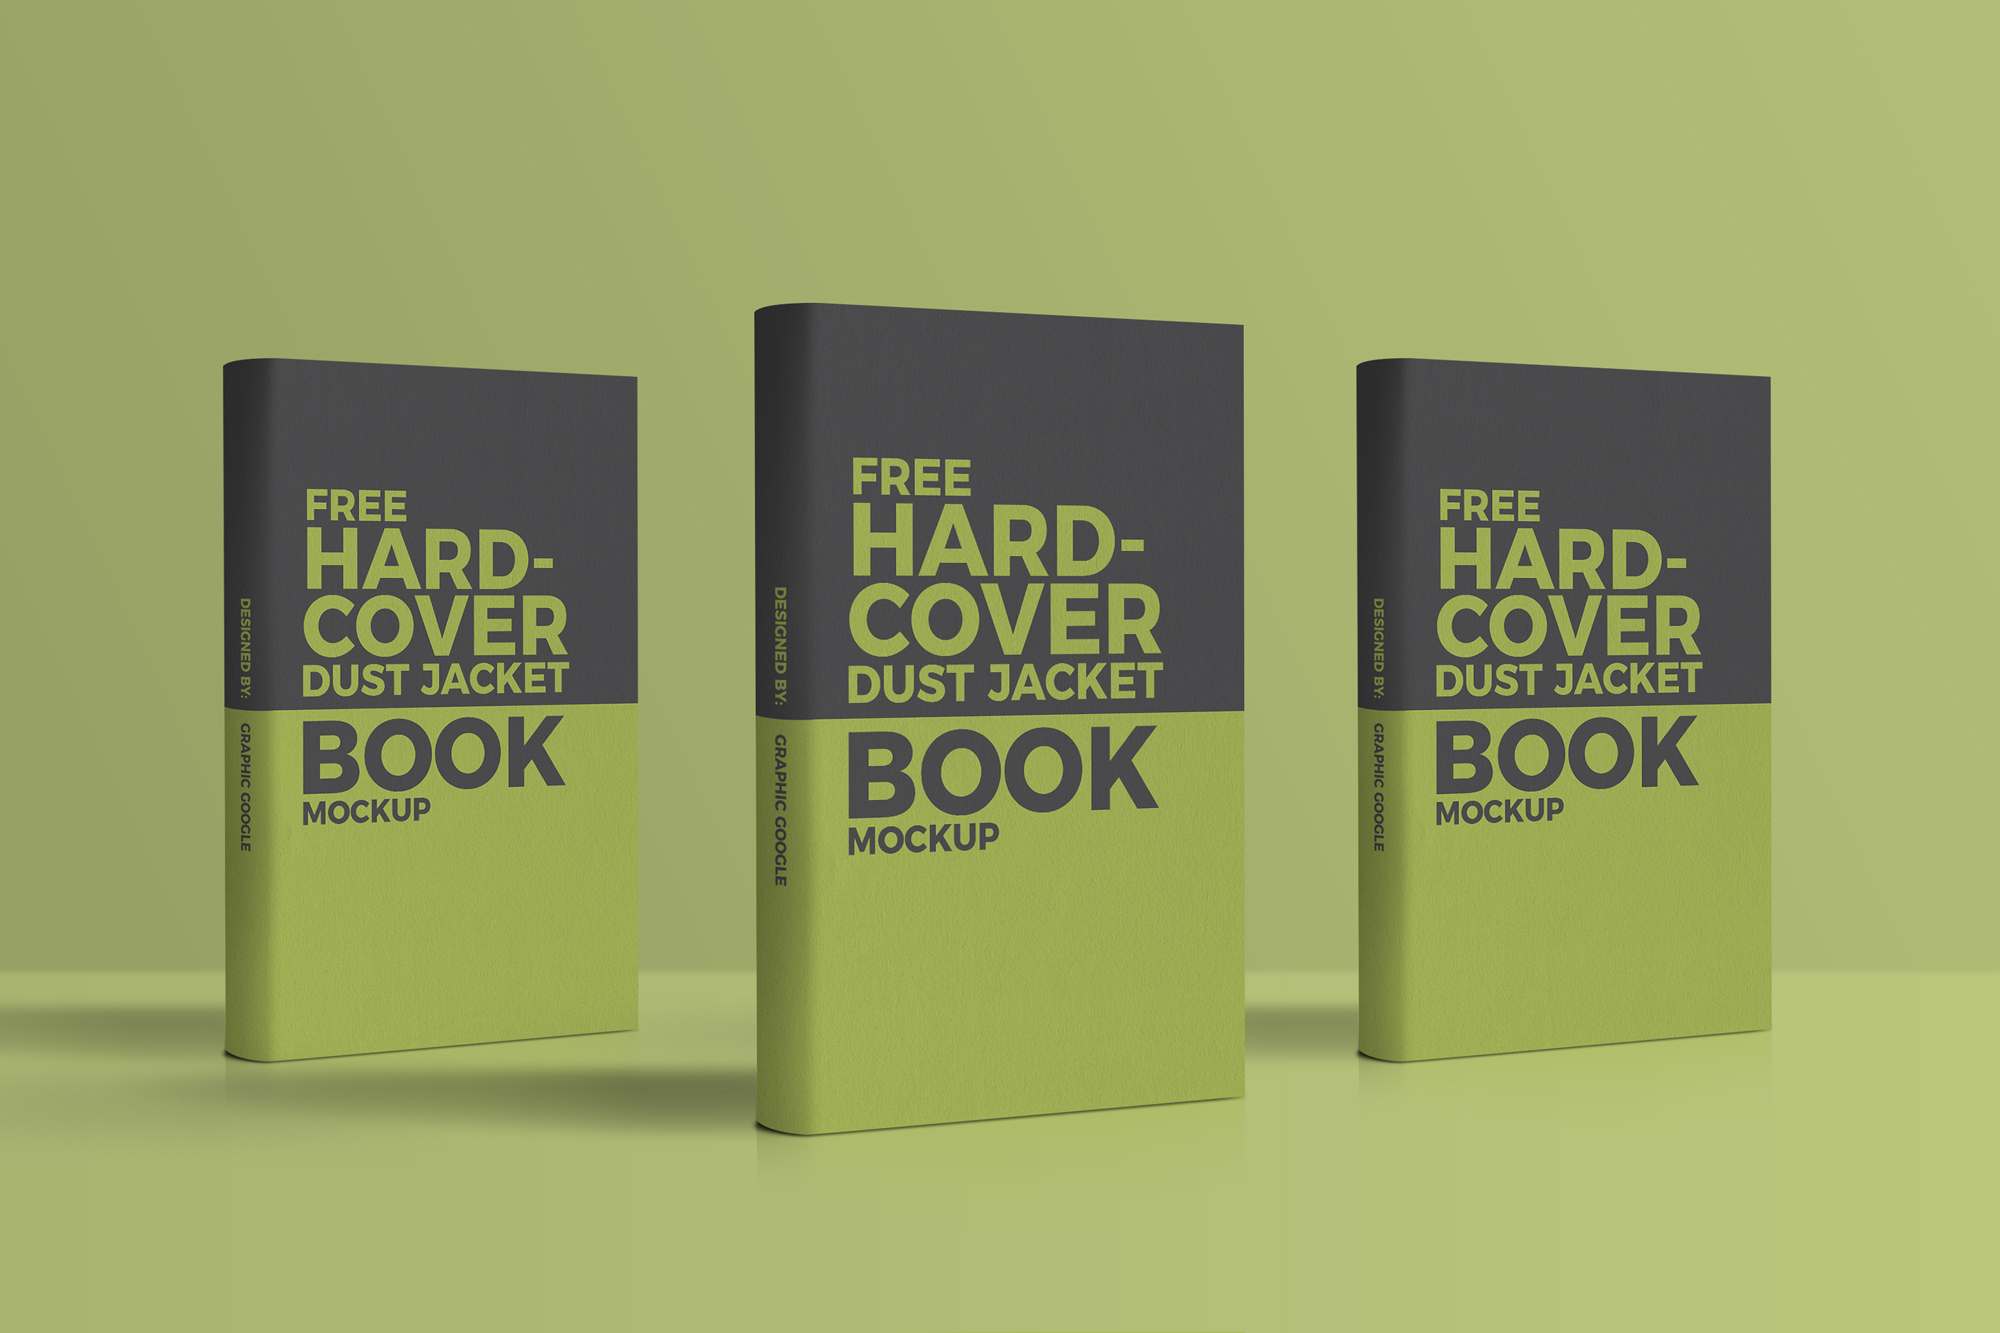 Free-Hardcover-Dust-Jacket-Book-Mockup-Preview-2